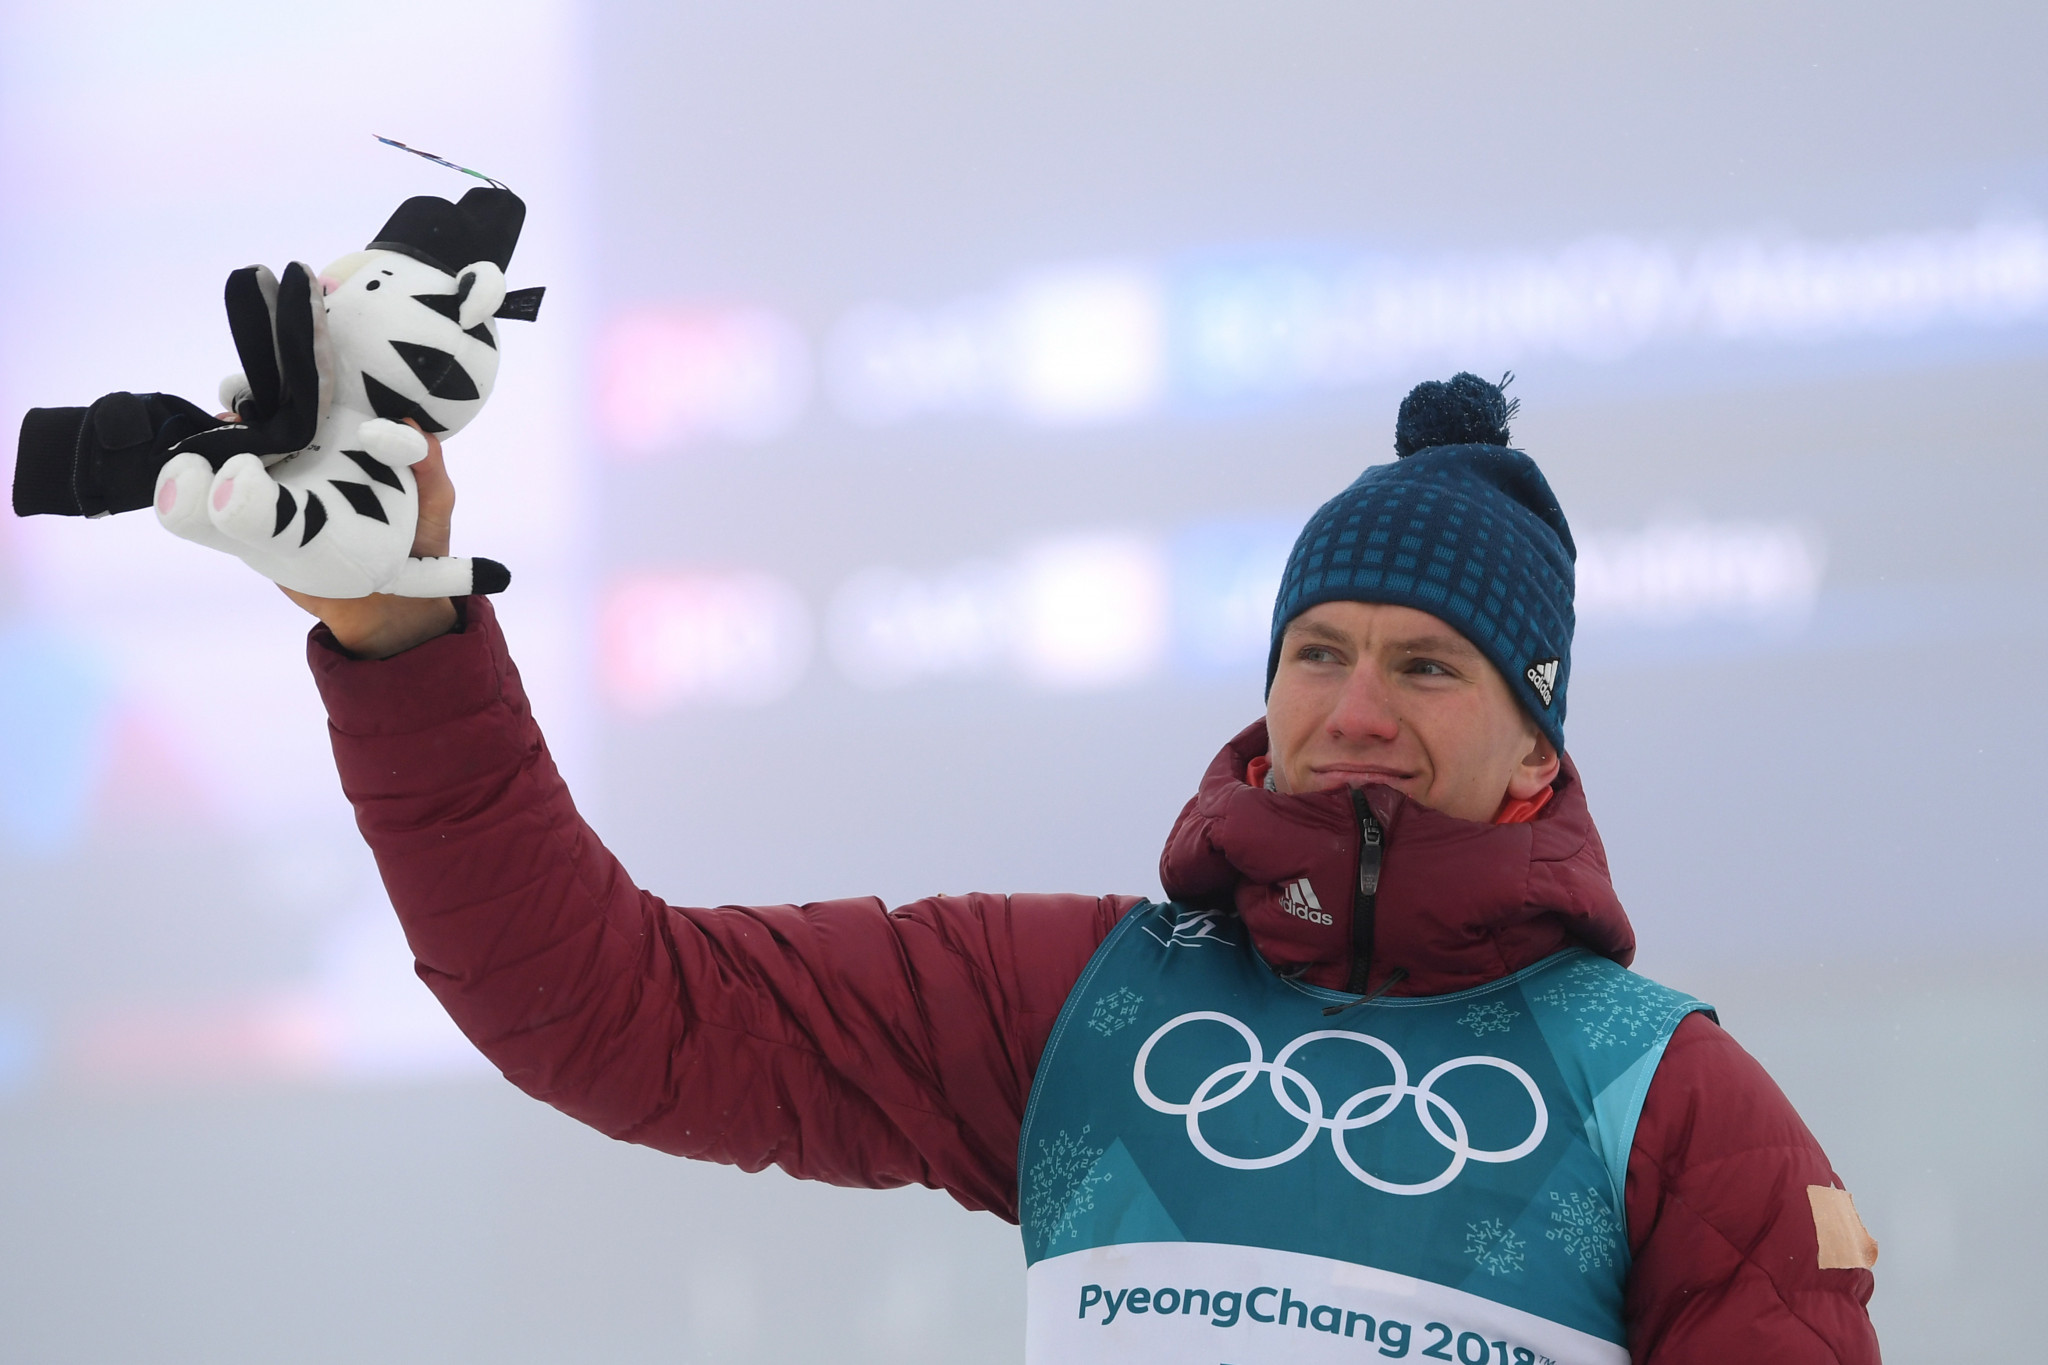 Alexander Bolshunov was one of three OAR cross-country skiing silver medal winners in Pyeongchang ©Getty Images